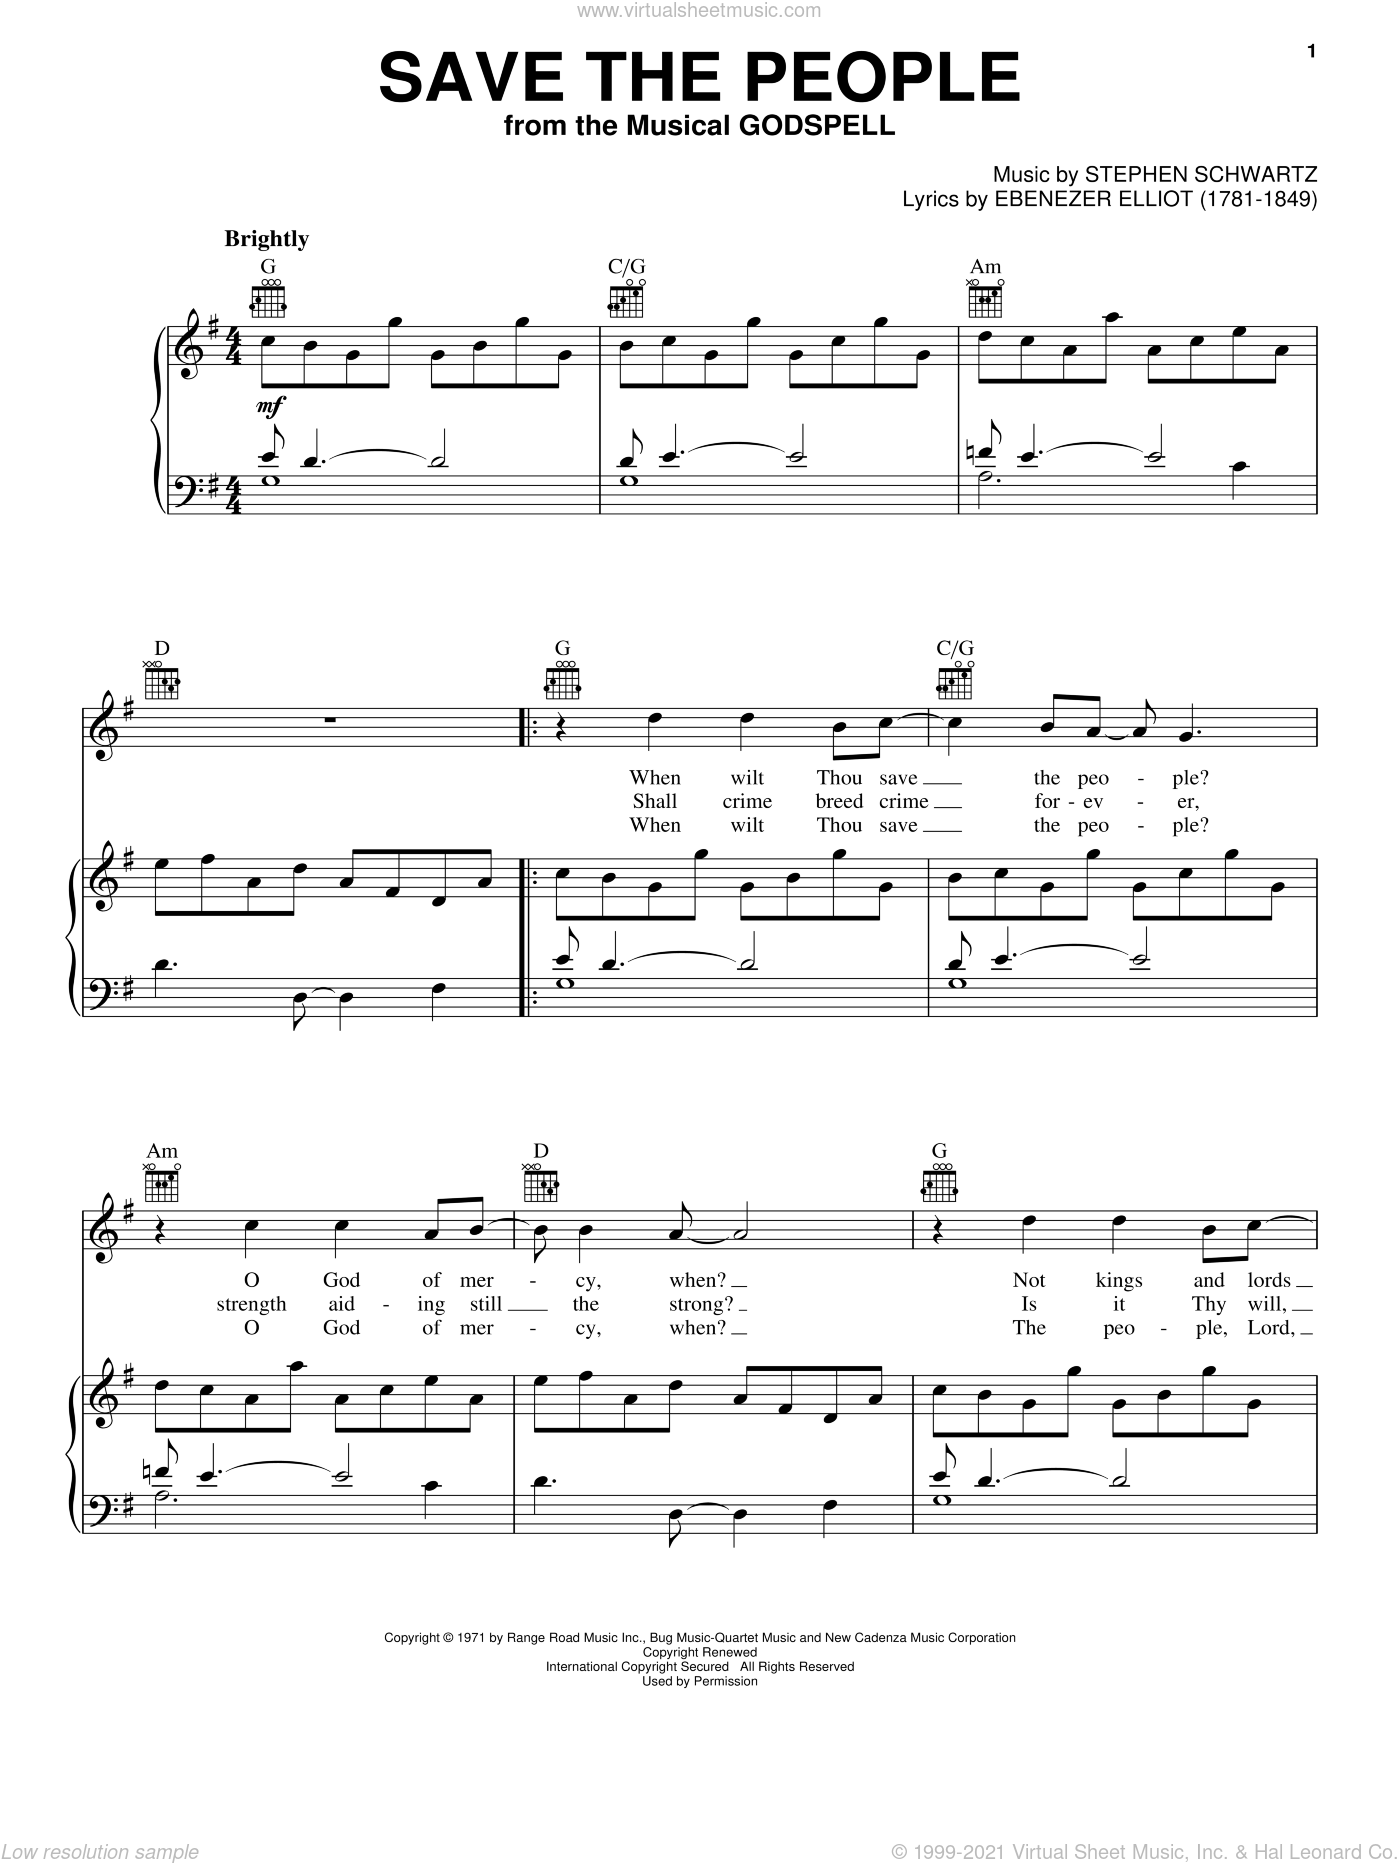 Save The People sheet music for voice, piano or guitar by Stephen Schwartz. Score Image Preview.